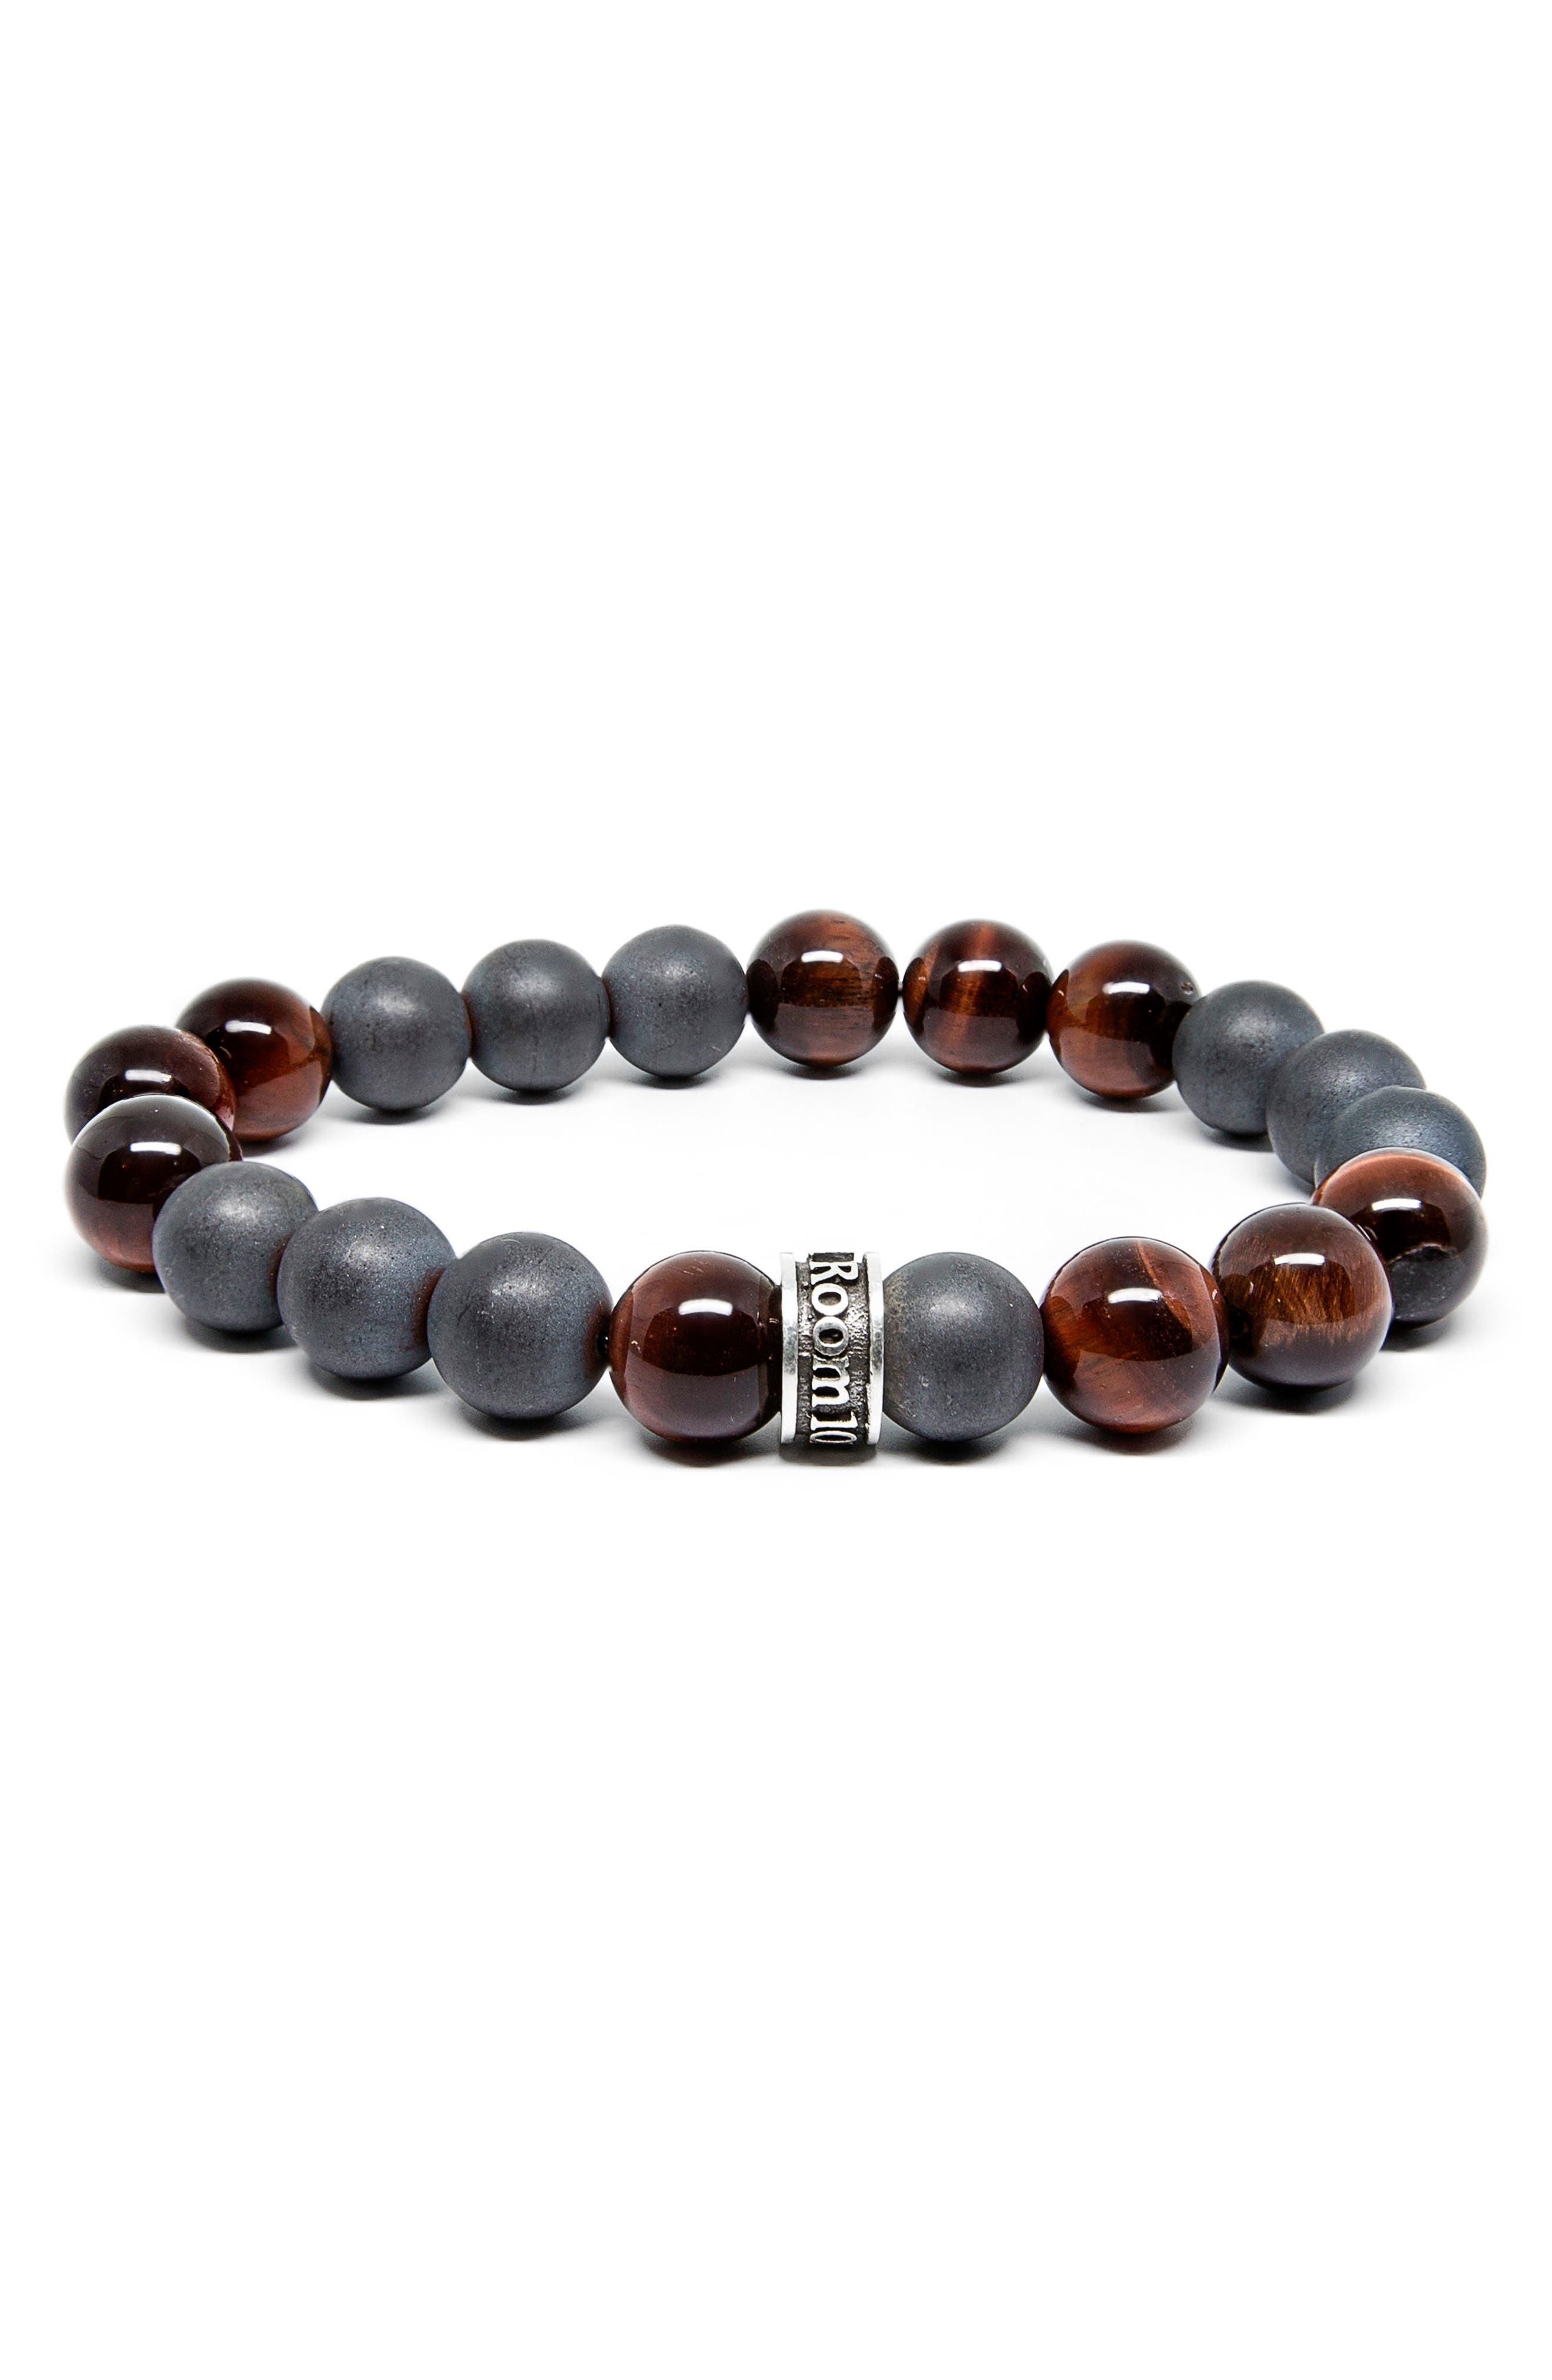 Hematite Red Tiger's Eye Stretch Bracelet,                             Main thumbnail 1, color,                             041